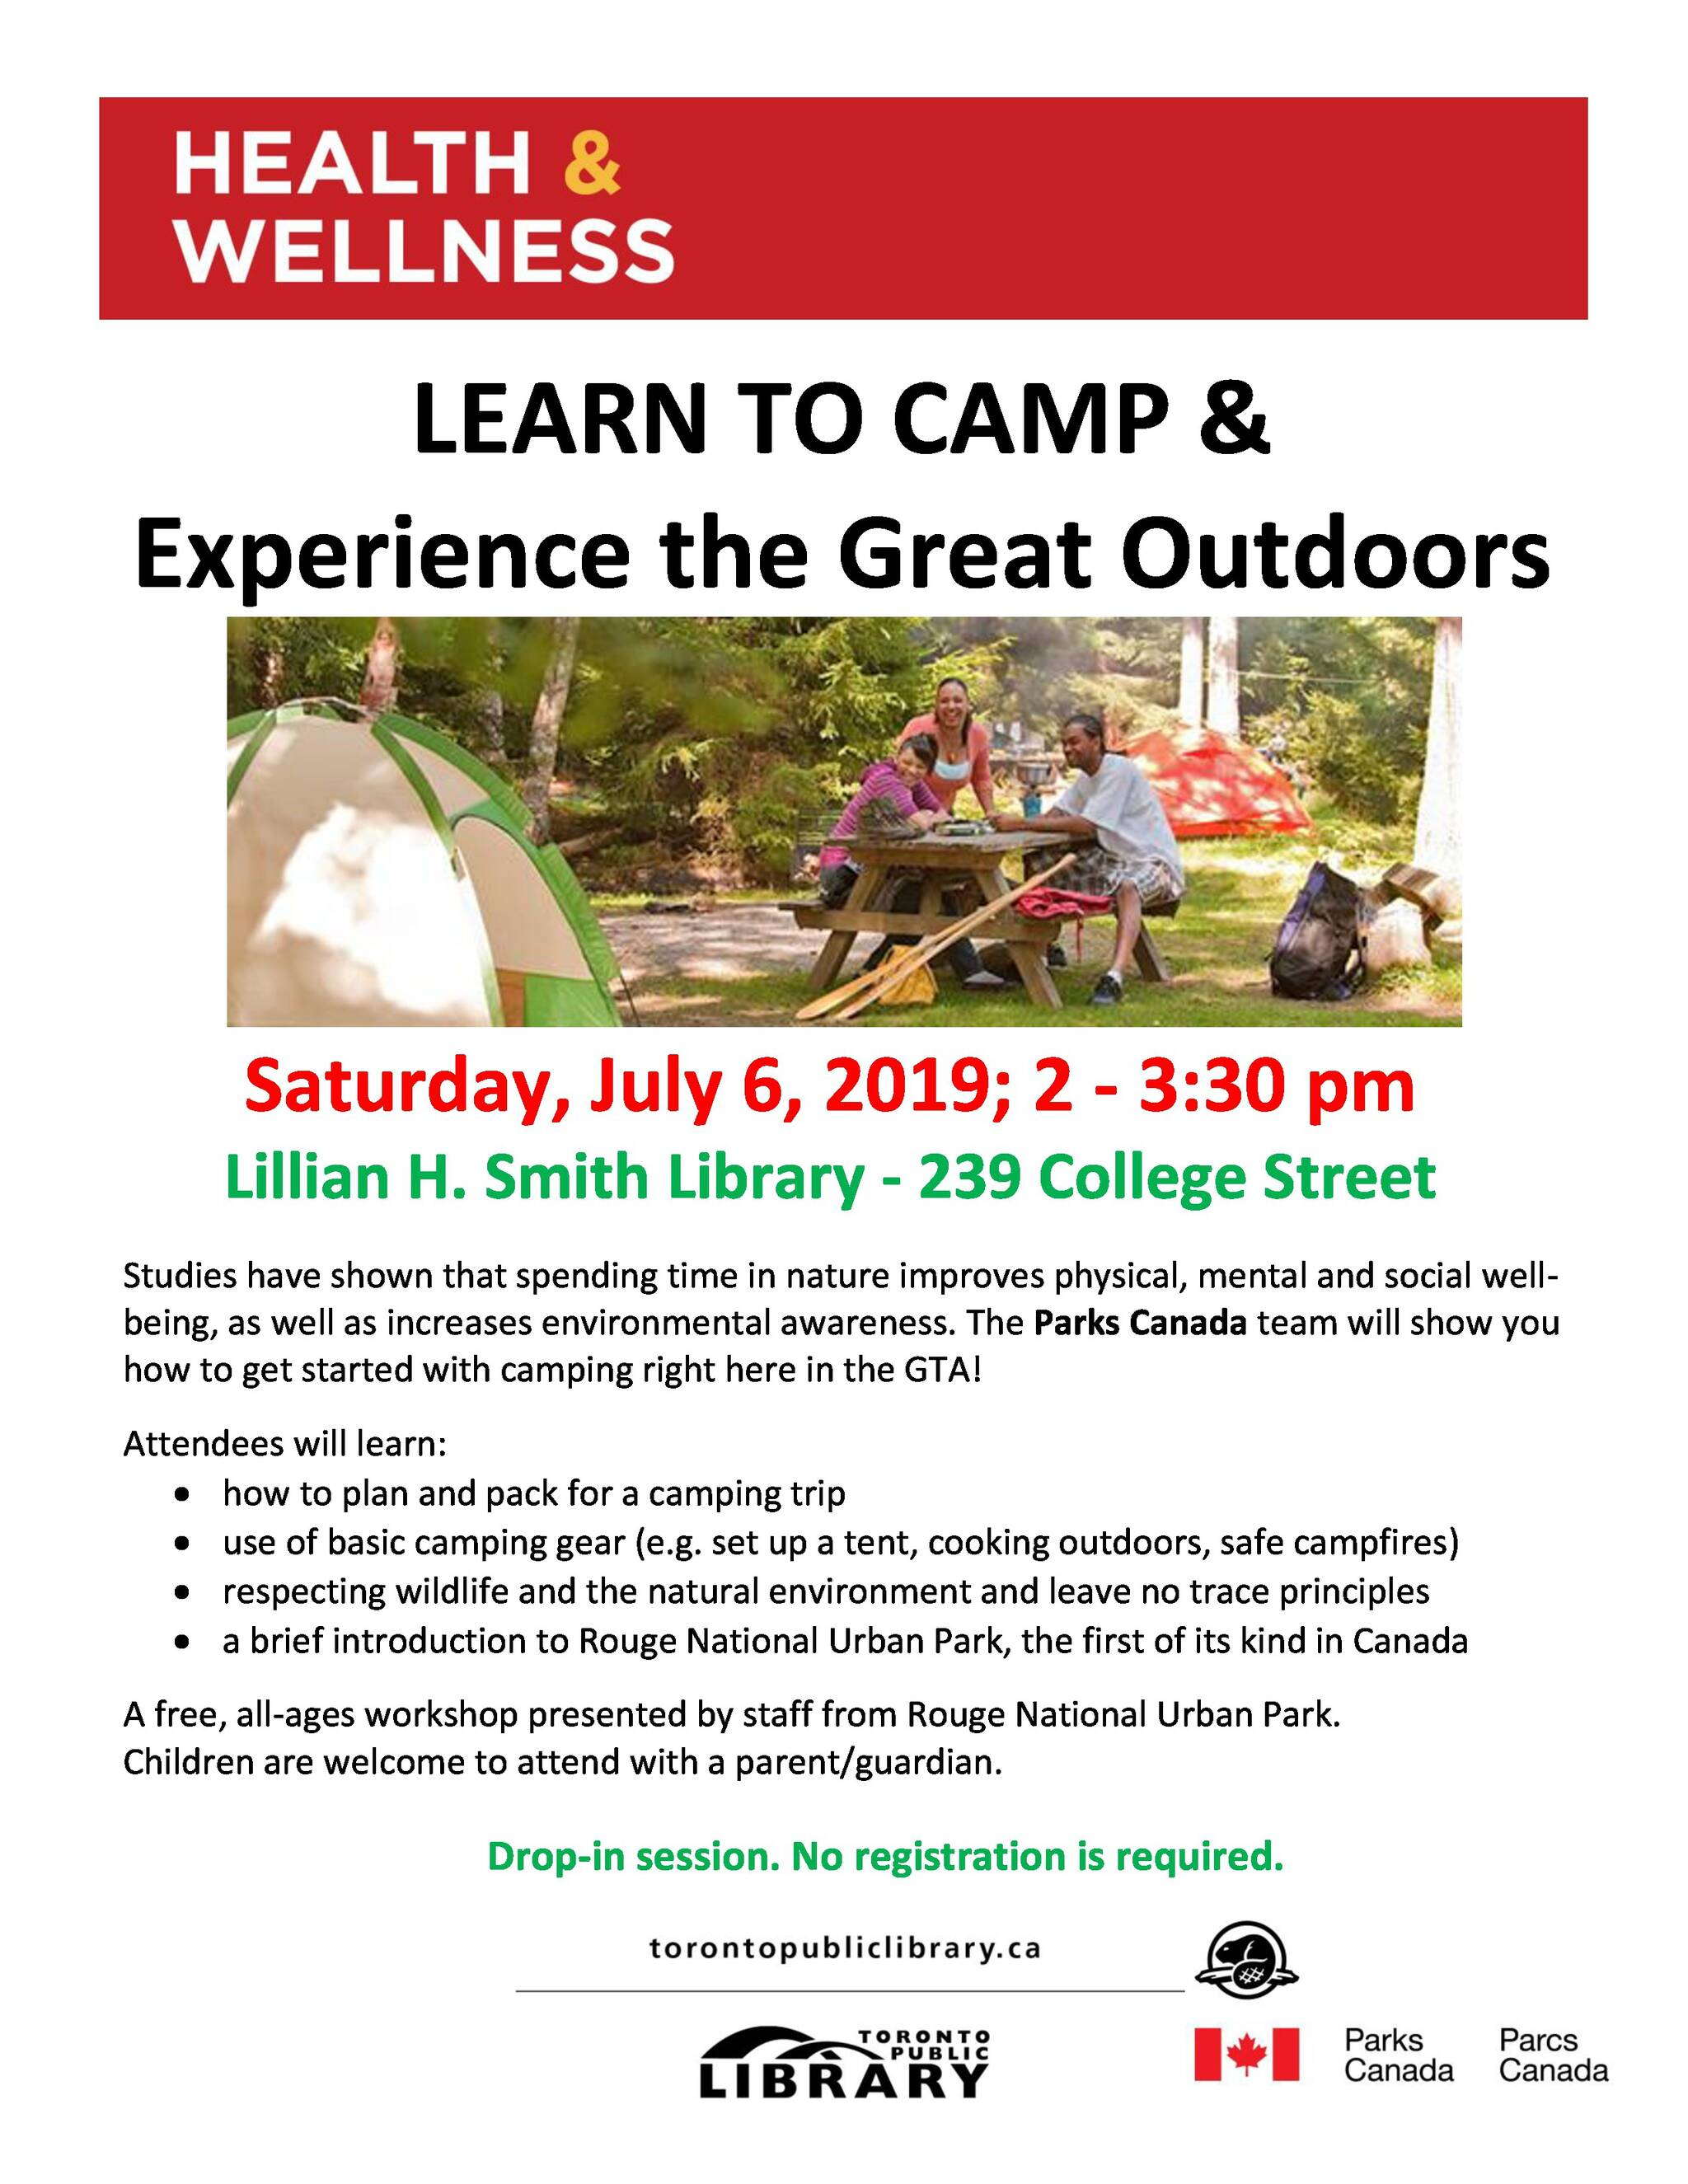 Learn to Camp with Parks Canada